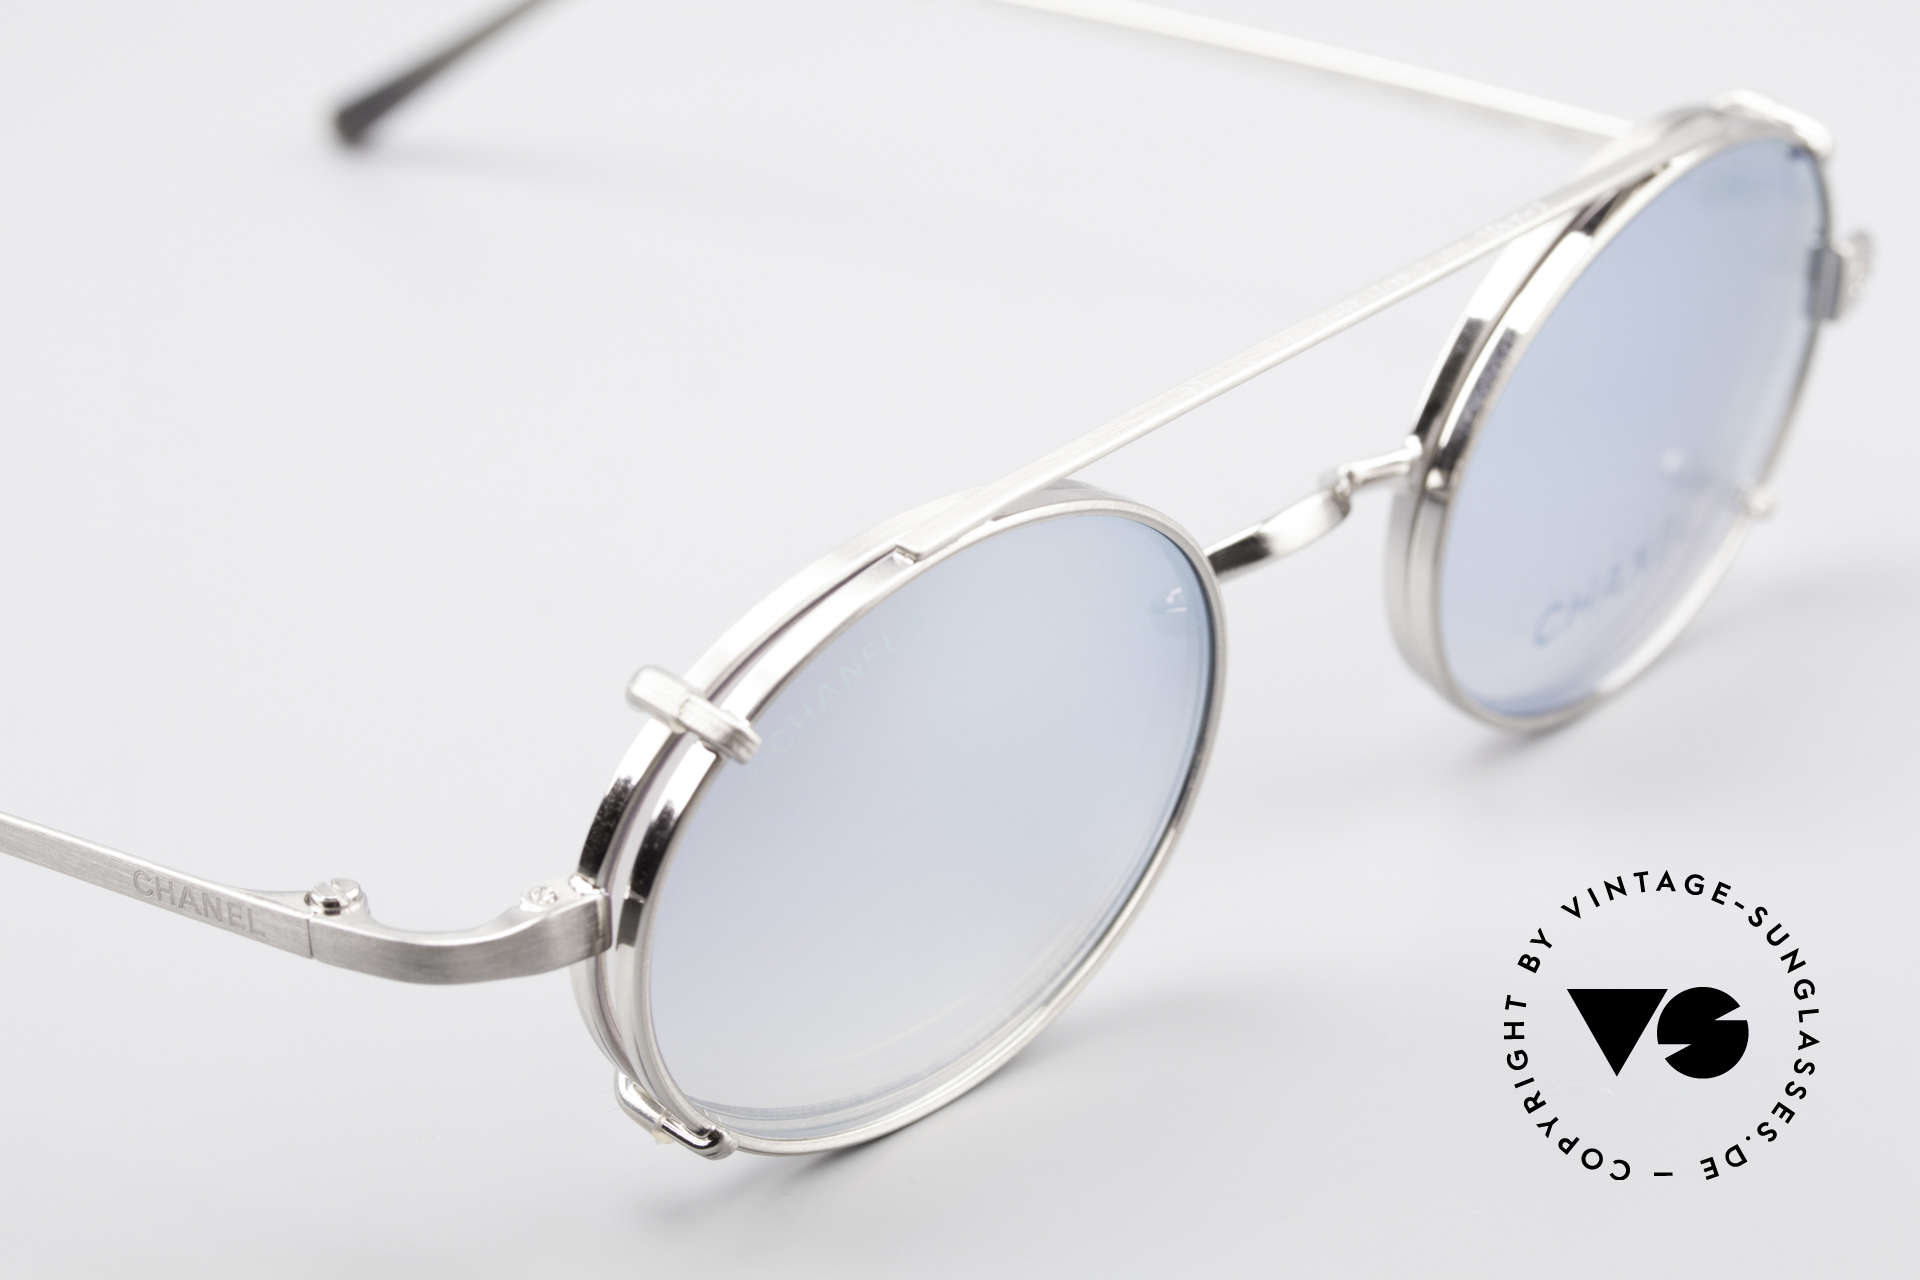 Chanel 2037 Oval Luxury Glasses Clip On, unworn designer shades (incl. original case by Chanel), Made for Men and Women